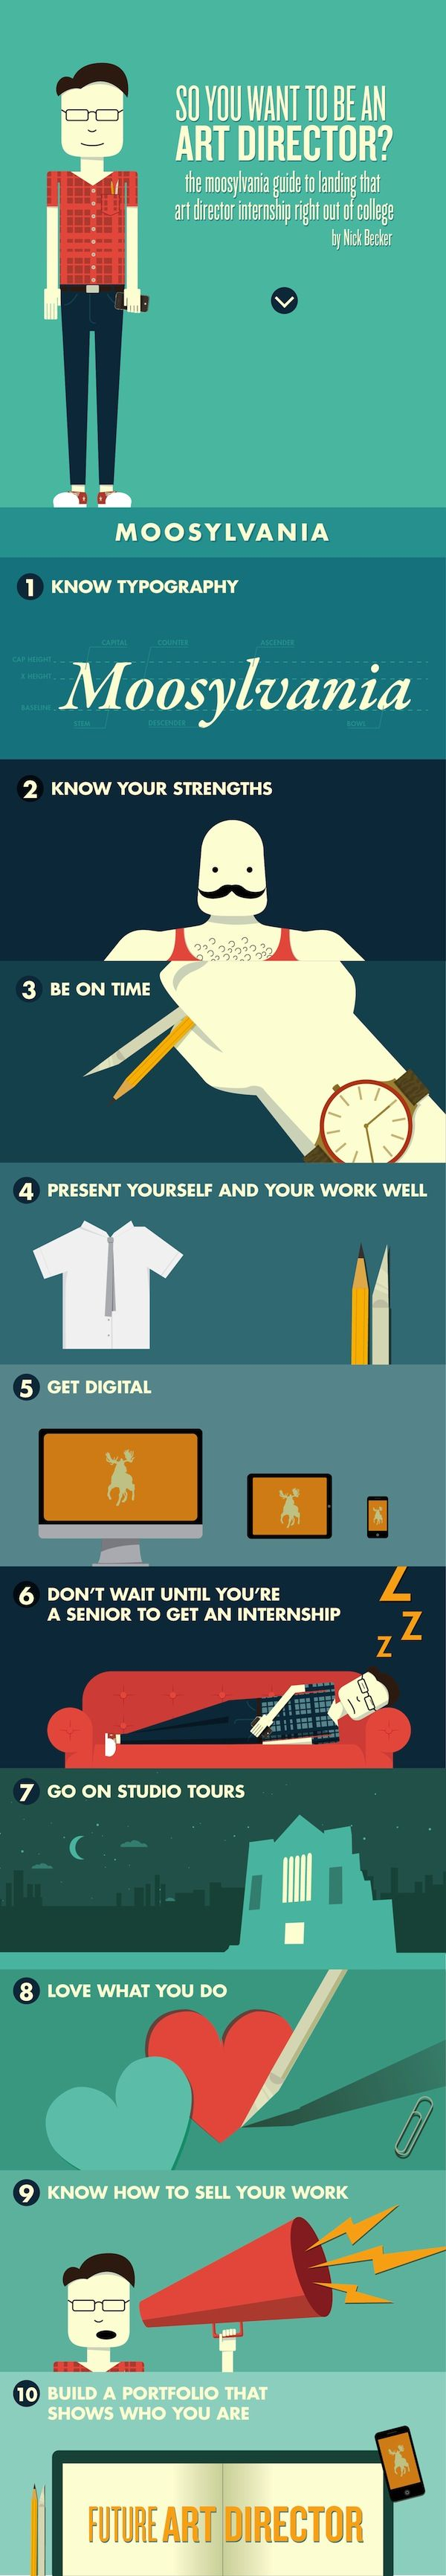 So You Want To Be An Art Director Great Infographic By Nick